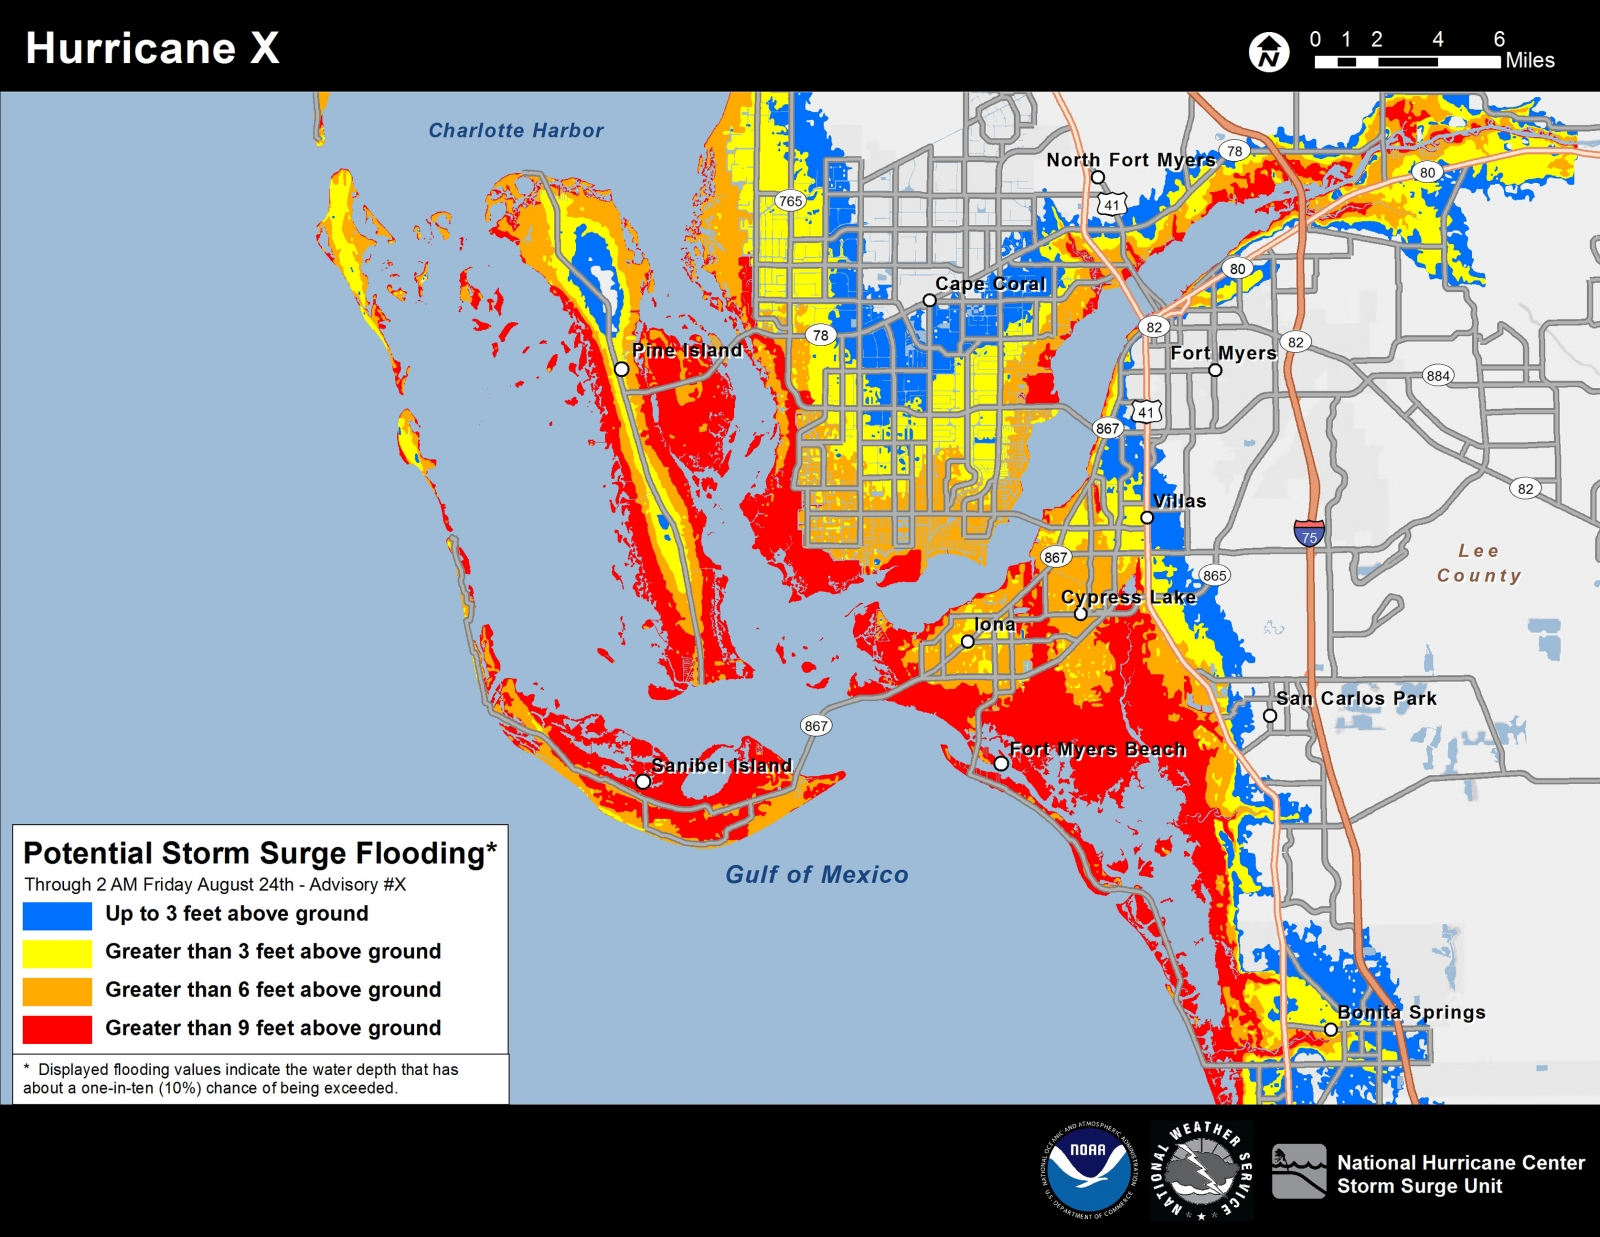 An example of the new experimental storm surge potential flooding map showing southwest Florida.